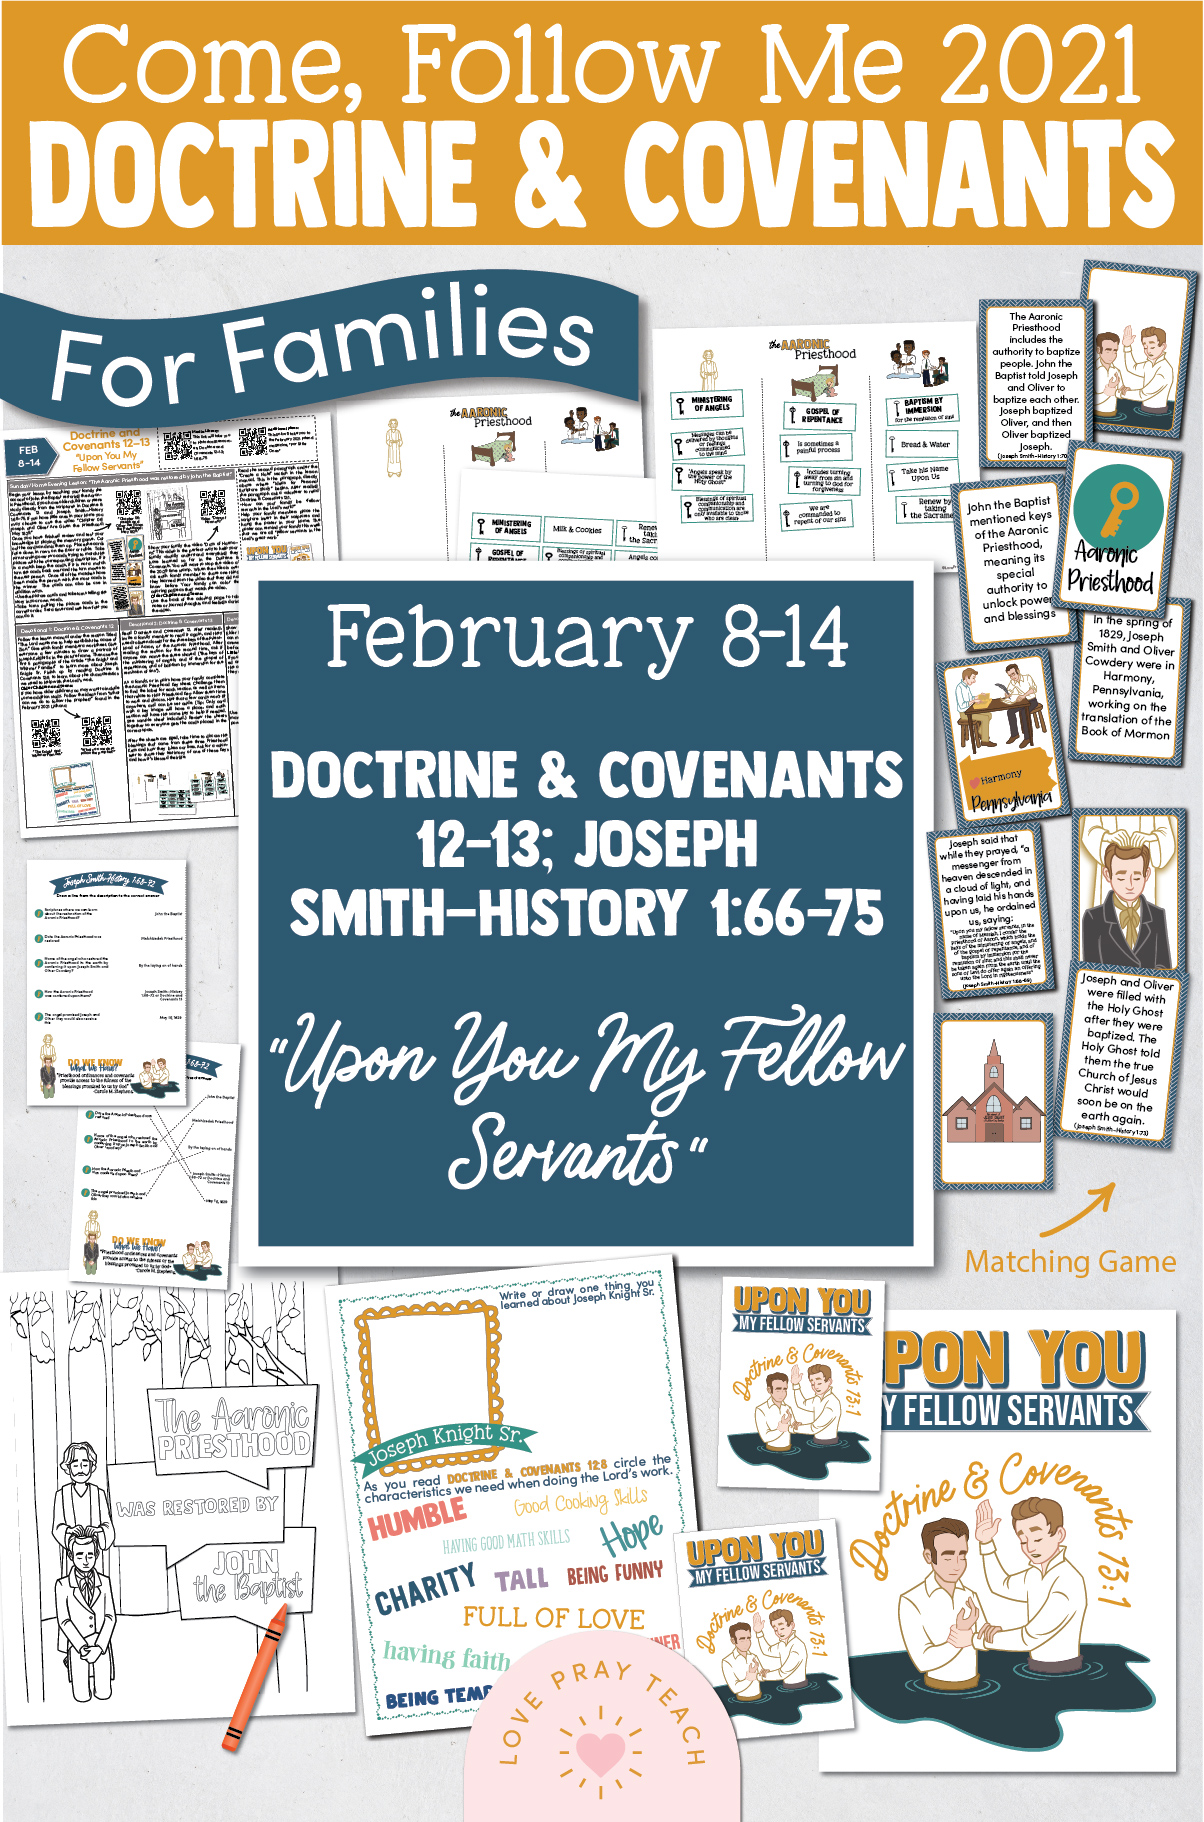 """Come, Follow Me—For Individuals and Families: Doctrine And Covenants 2021, February Week 2: February 8-14, Doctrine and Covenants 12–13; Joseph Smith—History 1:66–75, """"Upon You My Fellow Servants"""""""